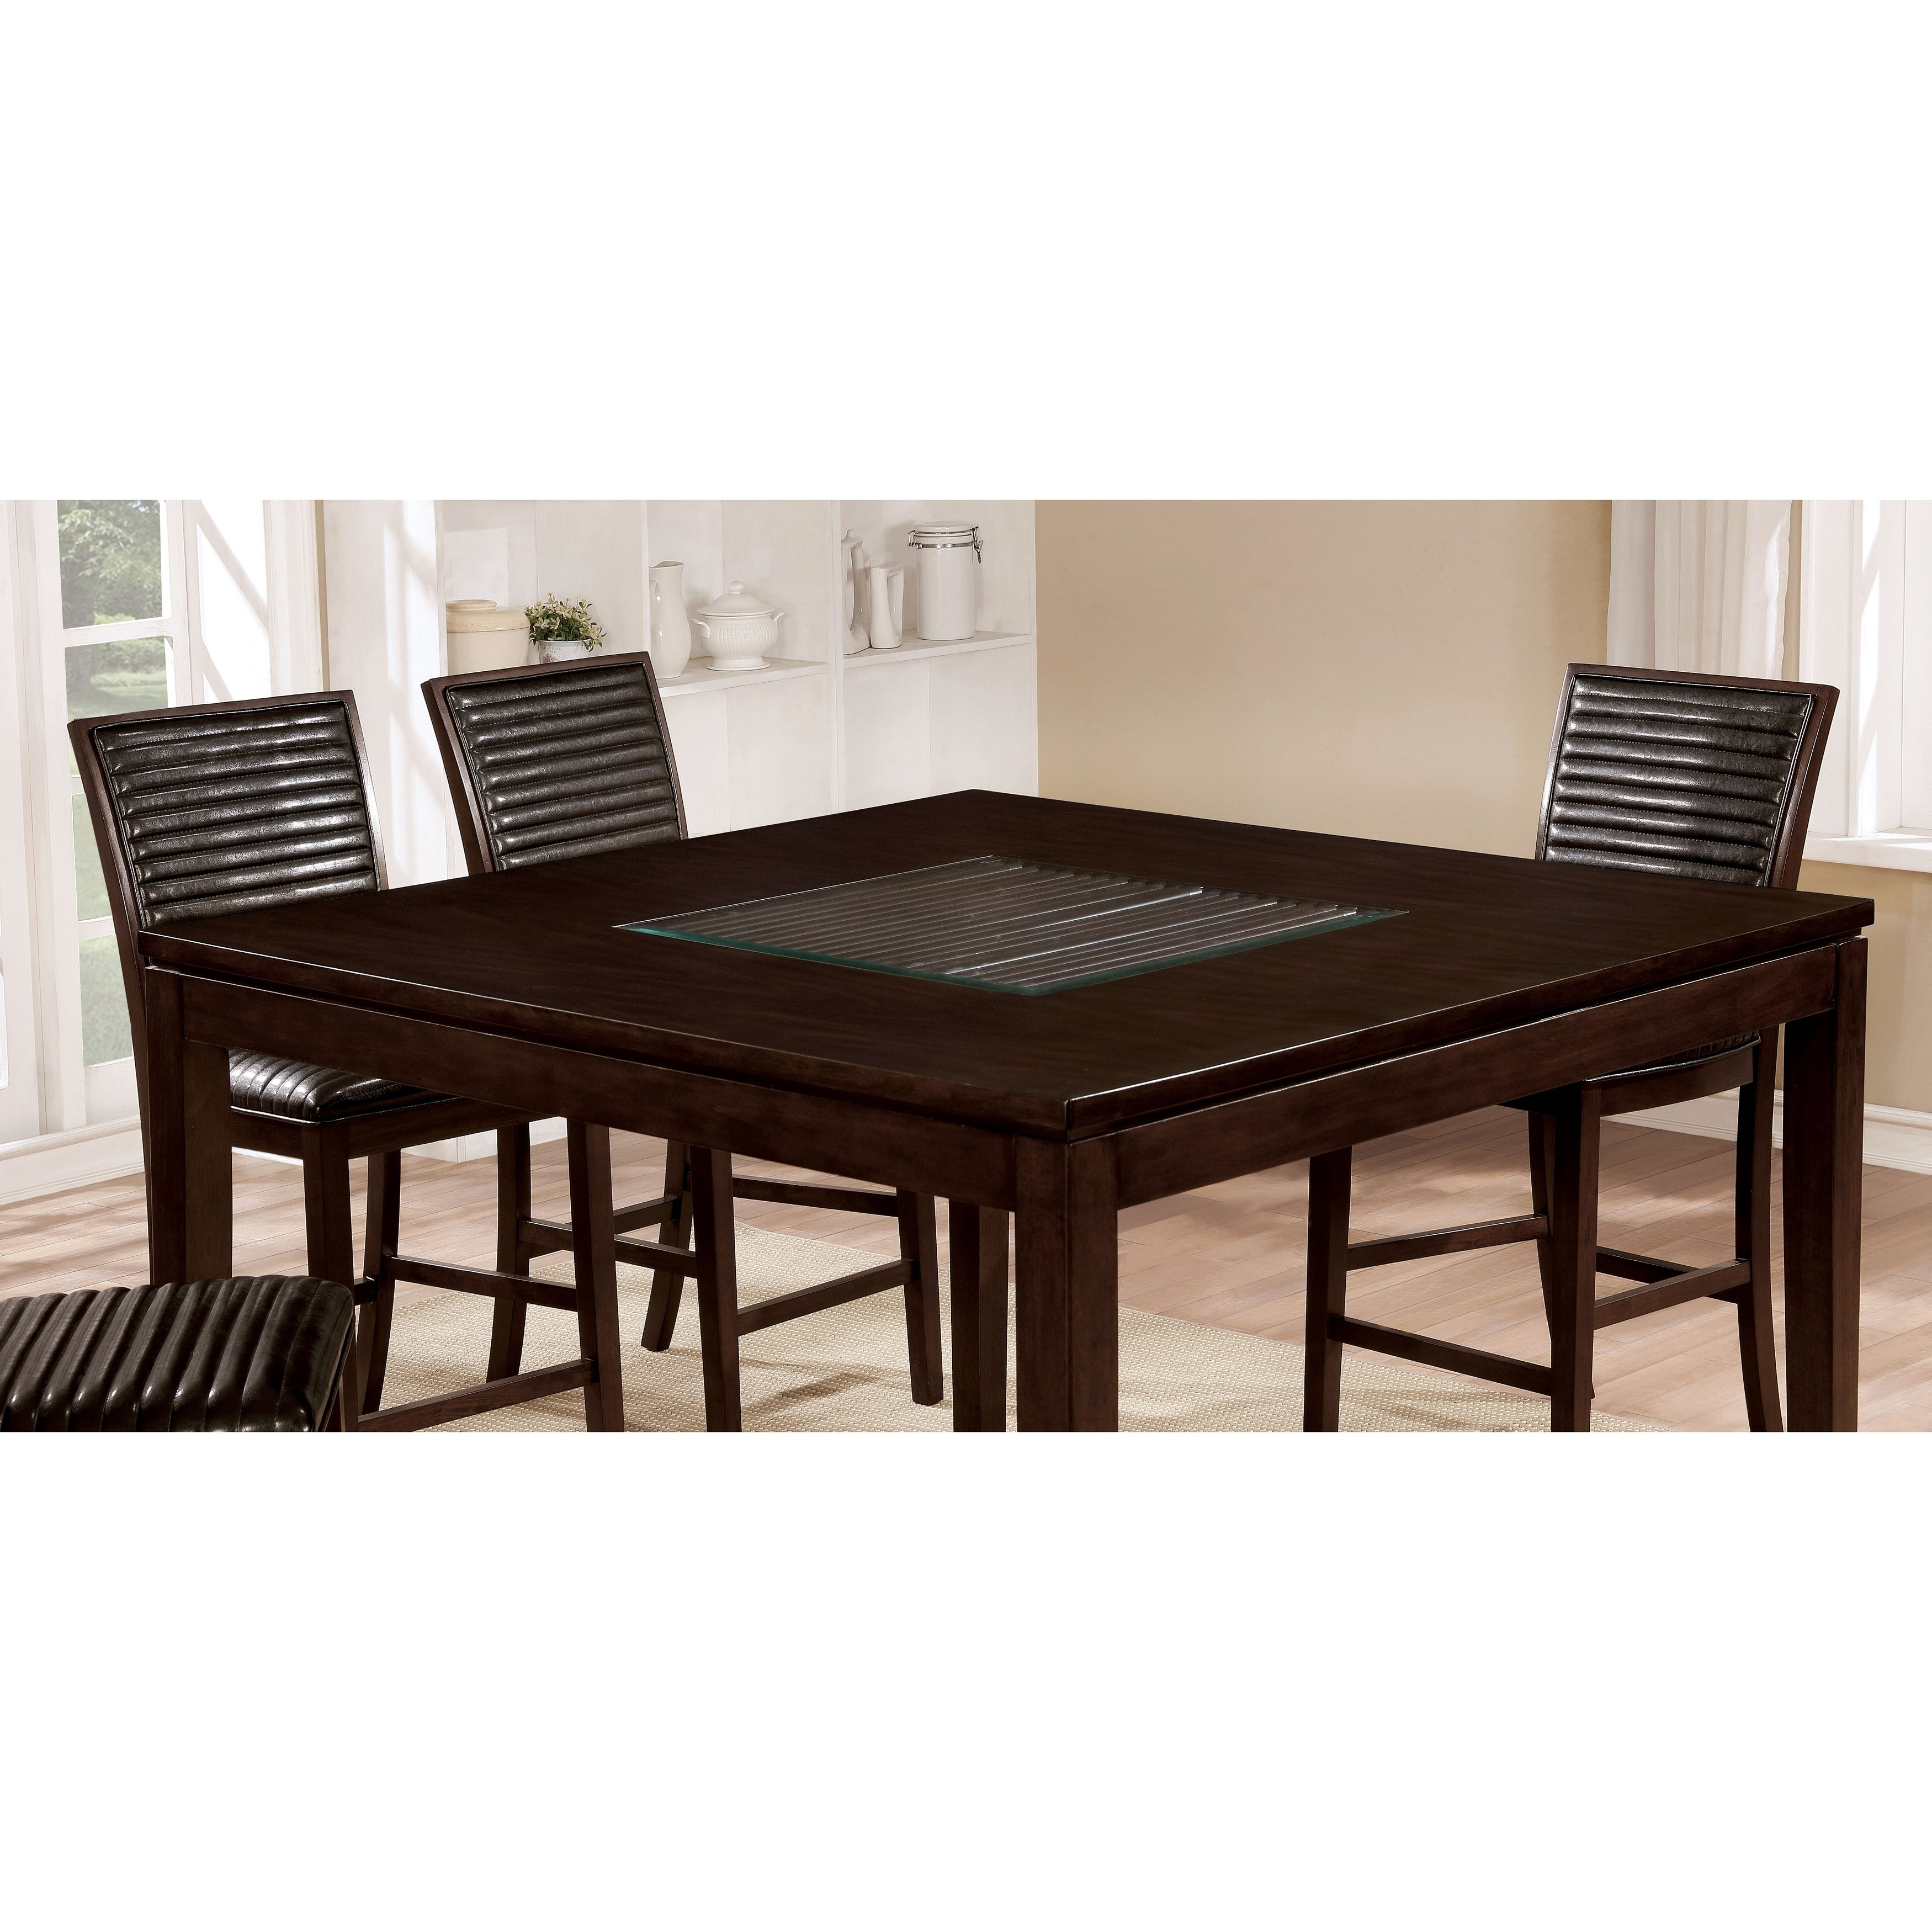 Shop Furniture Of America Gileon Walnut Wood And Faux Leather 7 Pertaining To Best And Newest Leon 7 Piece Dining Sets (View 15 of 20)